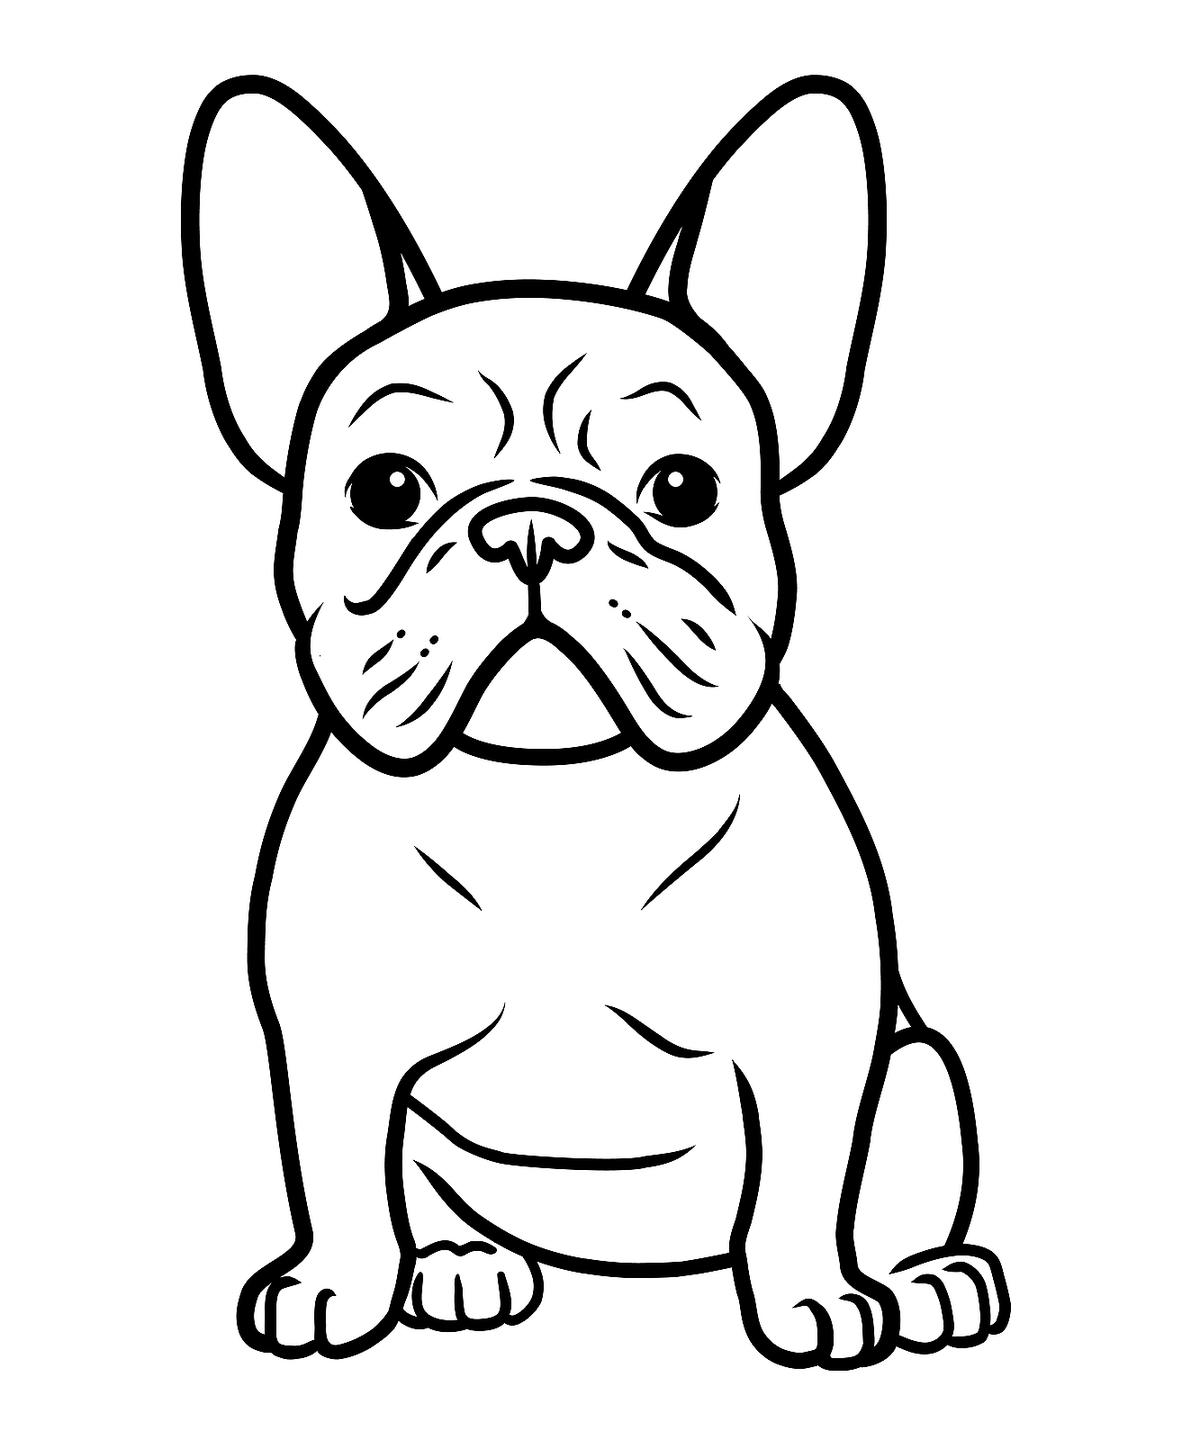 dogs pictures to color sitting dog drawing free download on clipartmag pictures to dogs color